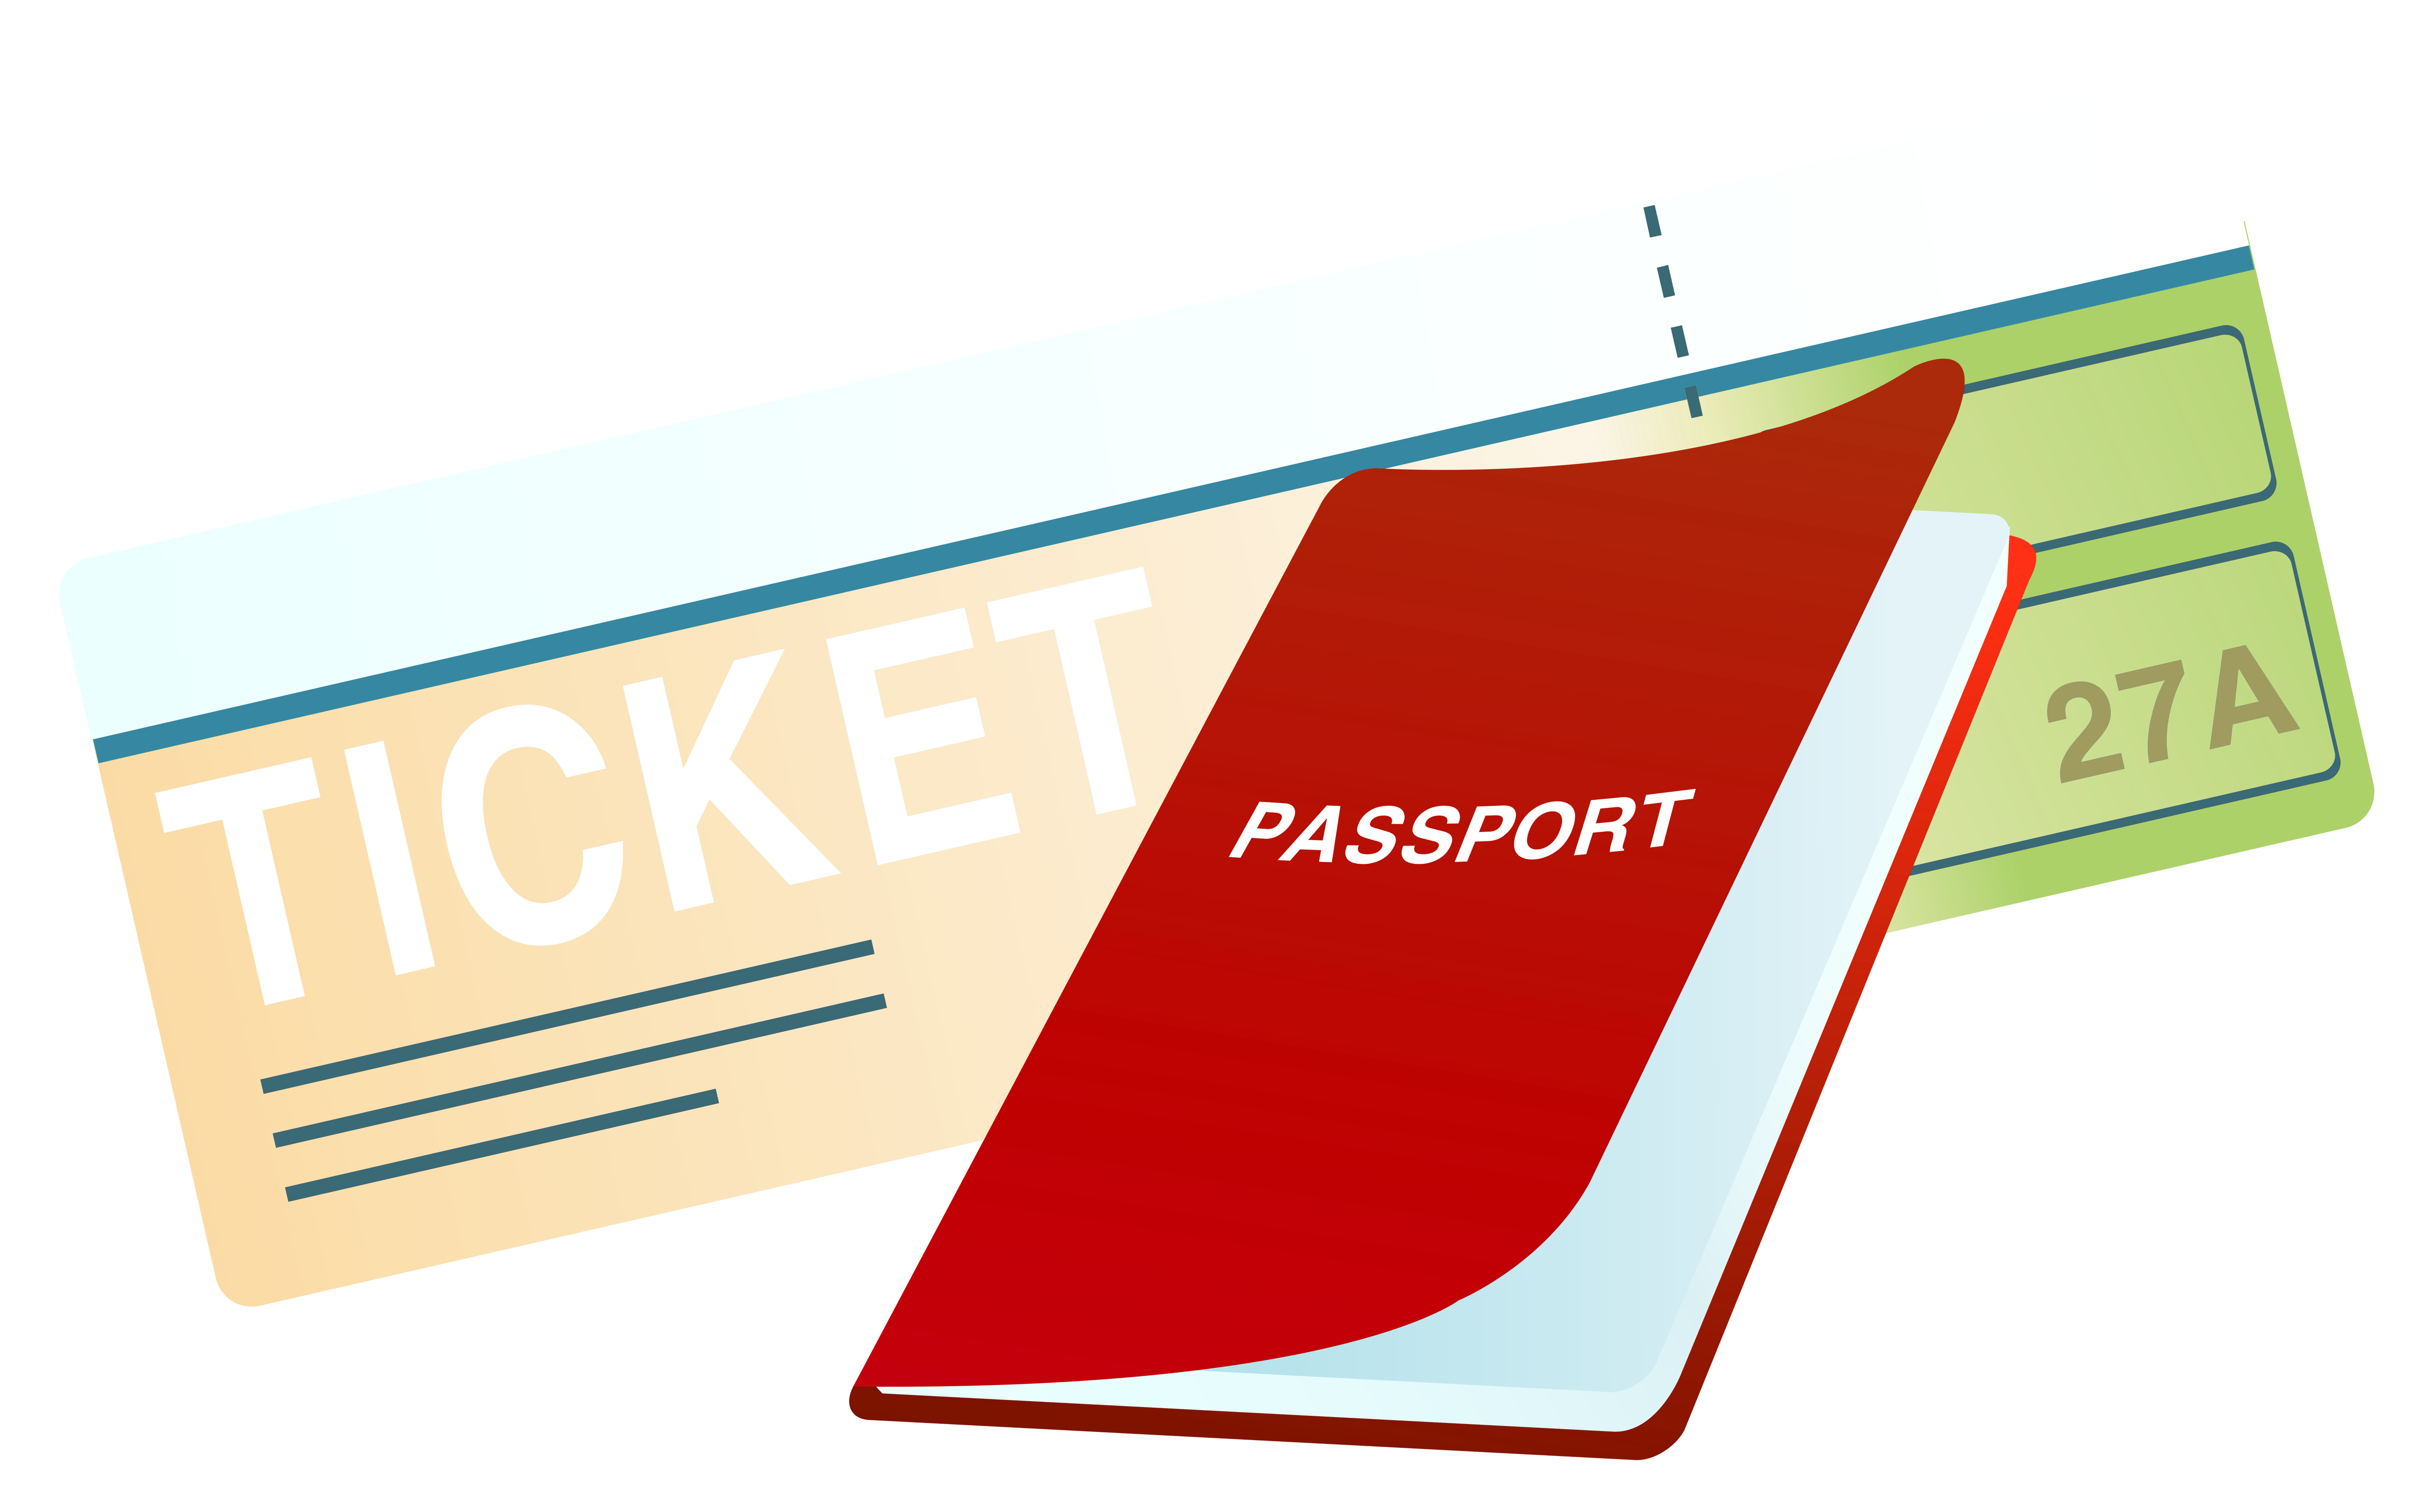 png library stock Passport clipart. Ticket and png image